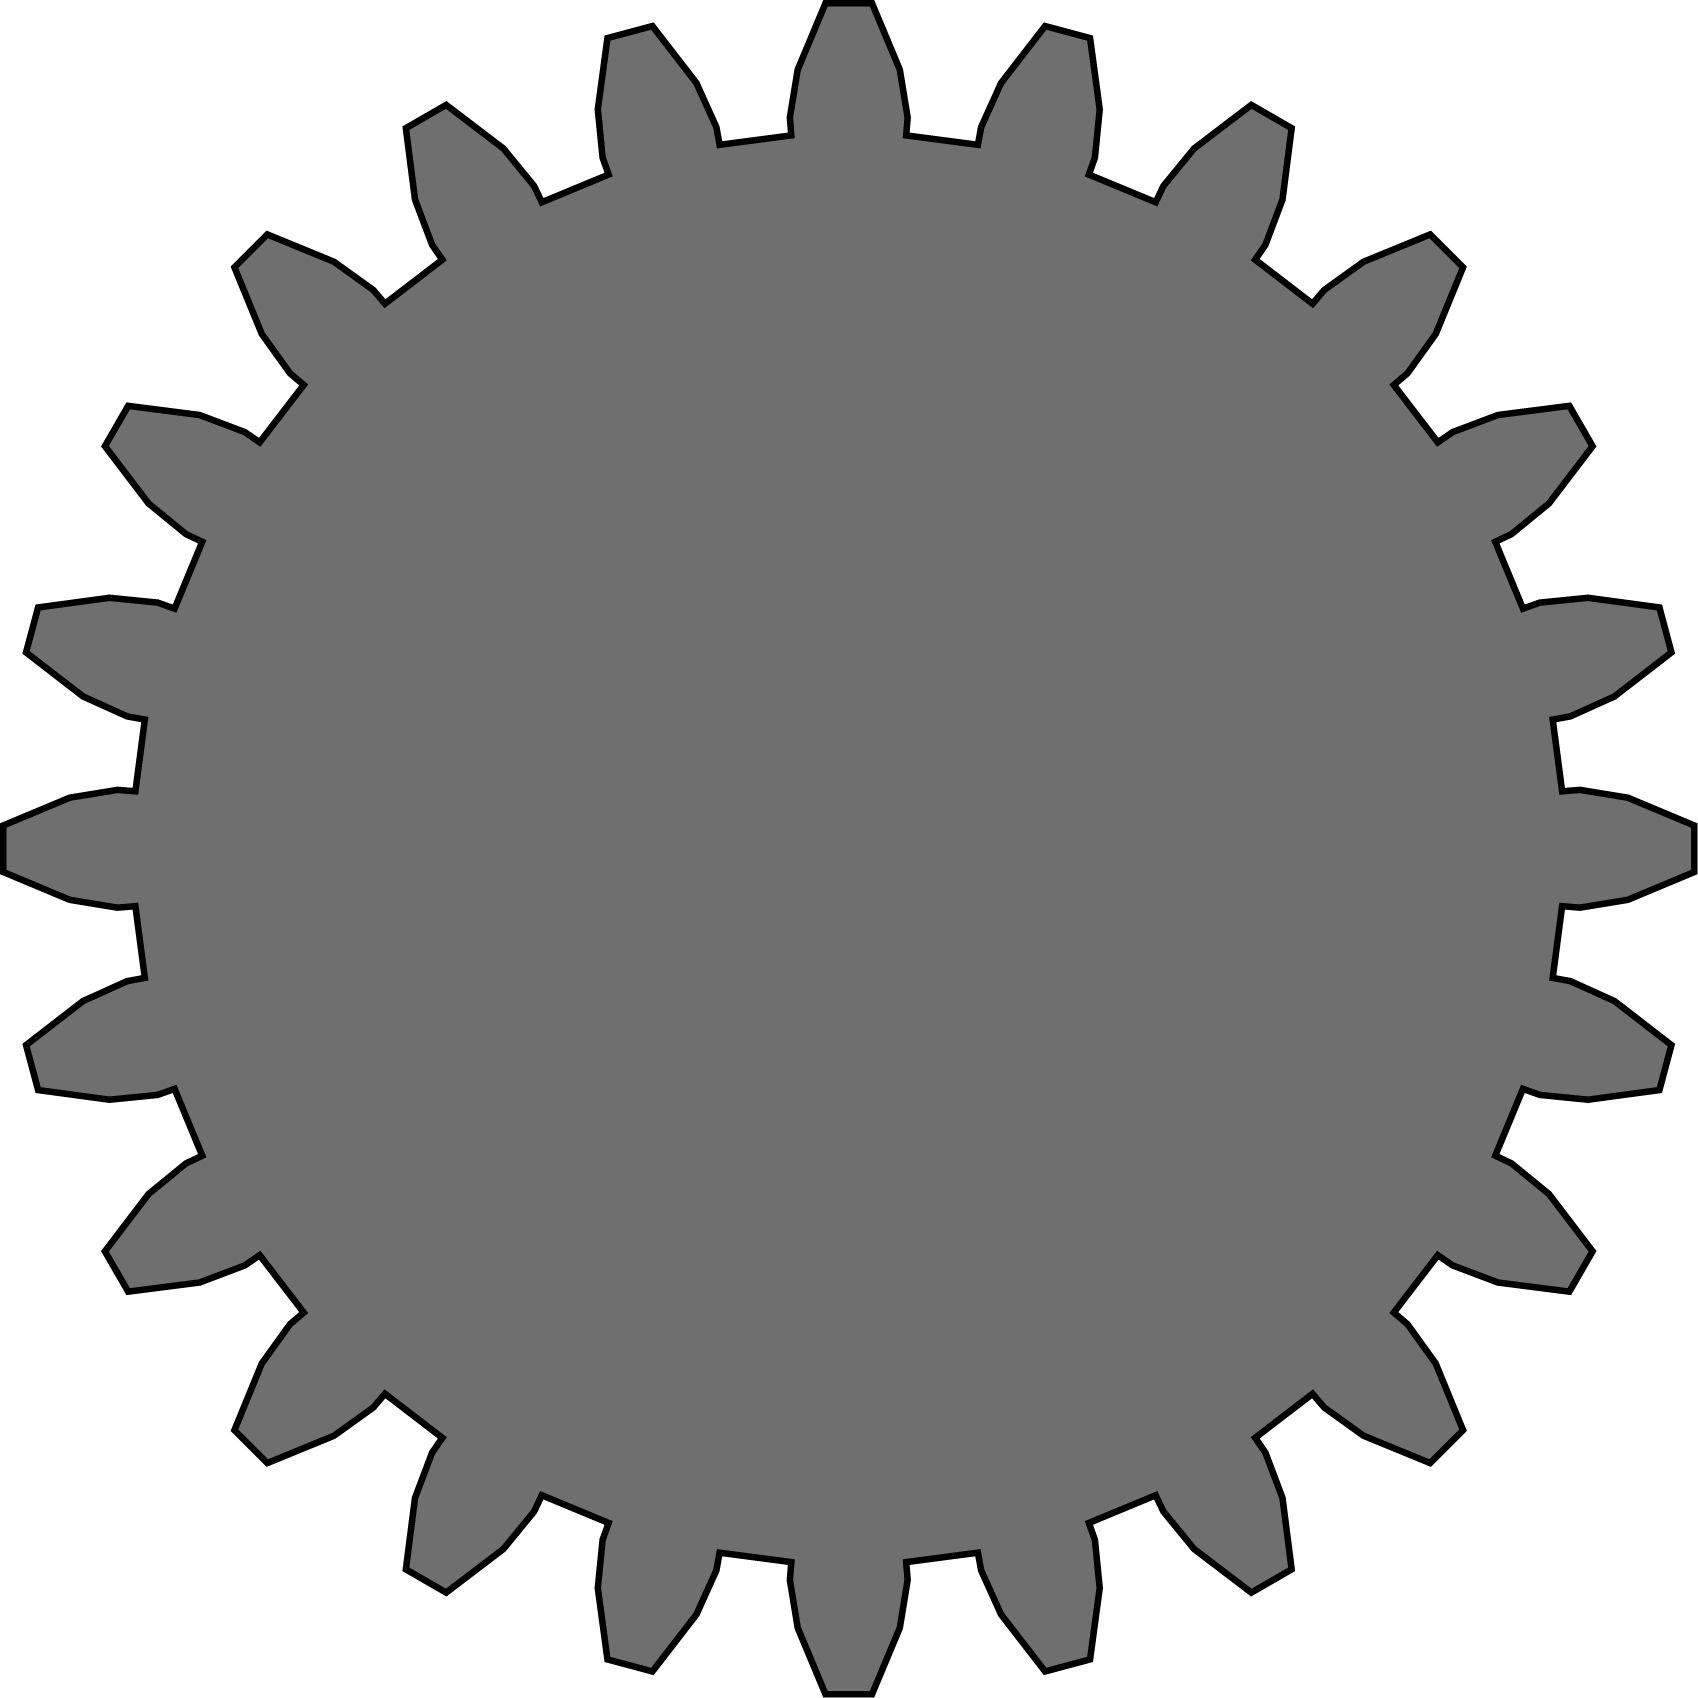 Creating-SVG-Desktop-CNC-Bantam Tools.png